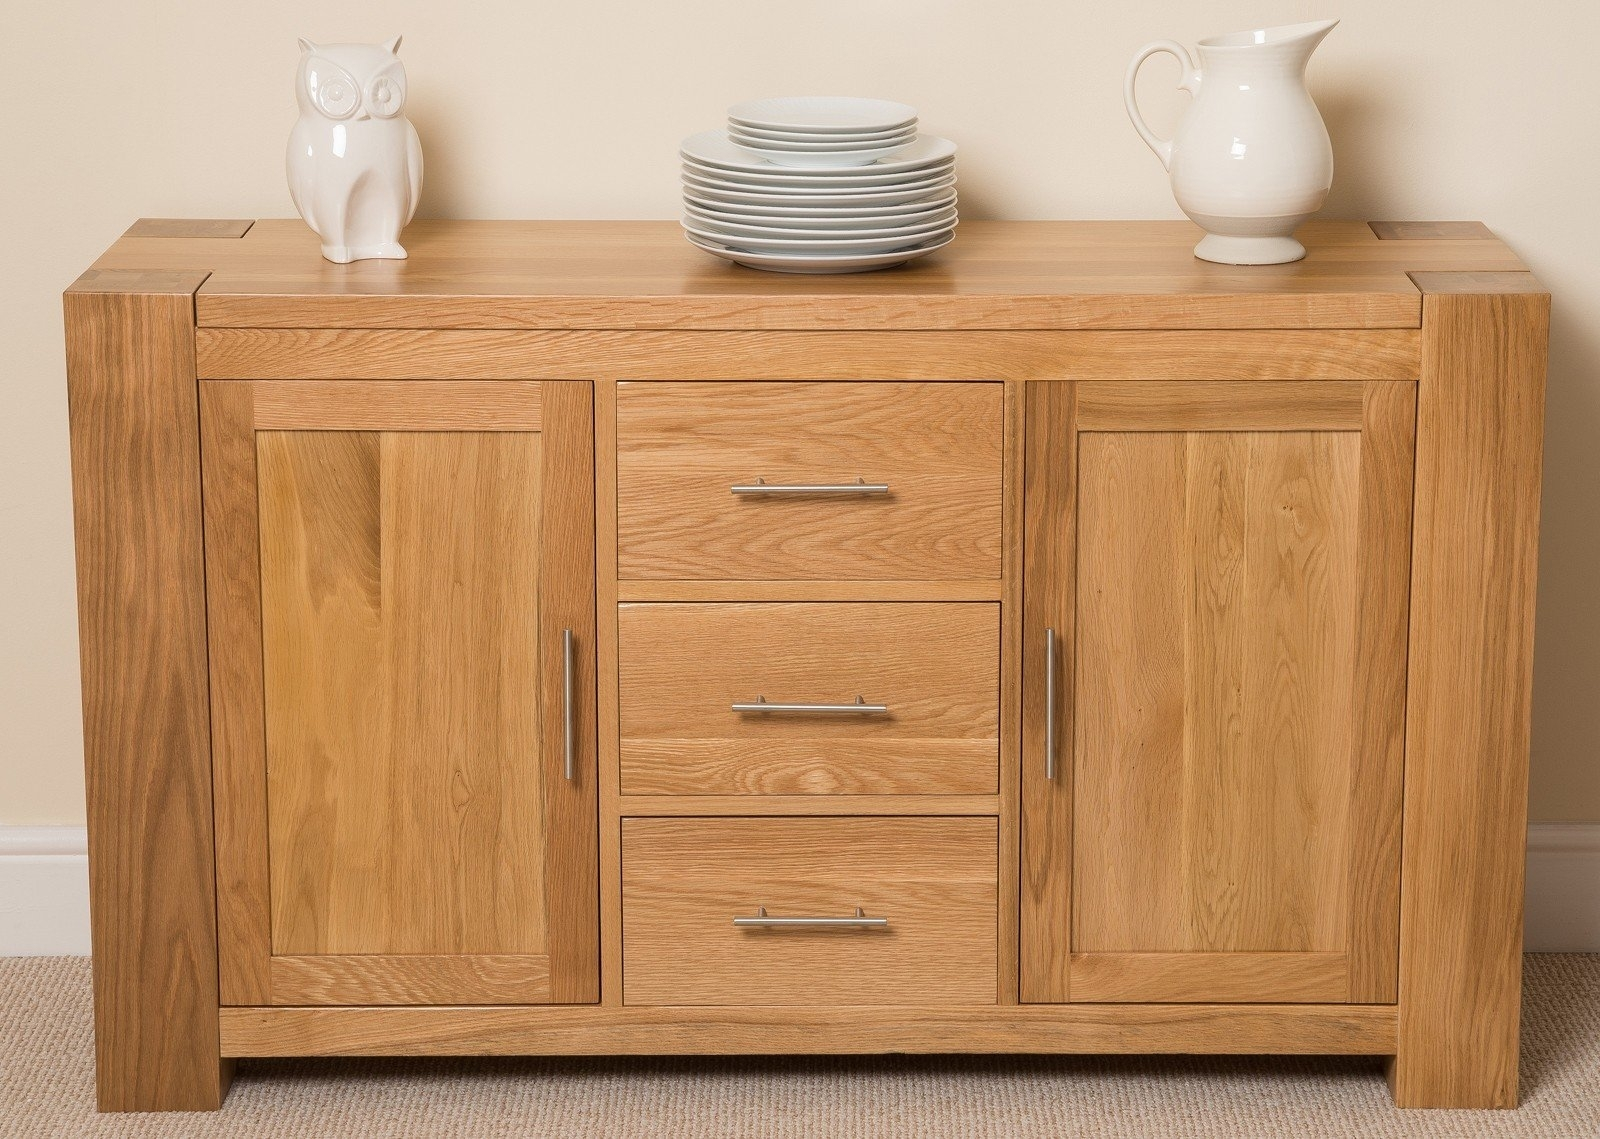 Hokku Designs Kuba 2 Door 3 Drawer Sideboard | Wayfair.co.uk within Aged Pine 3-Drawer 2-Door Sideboards (Image 14 of 30)